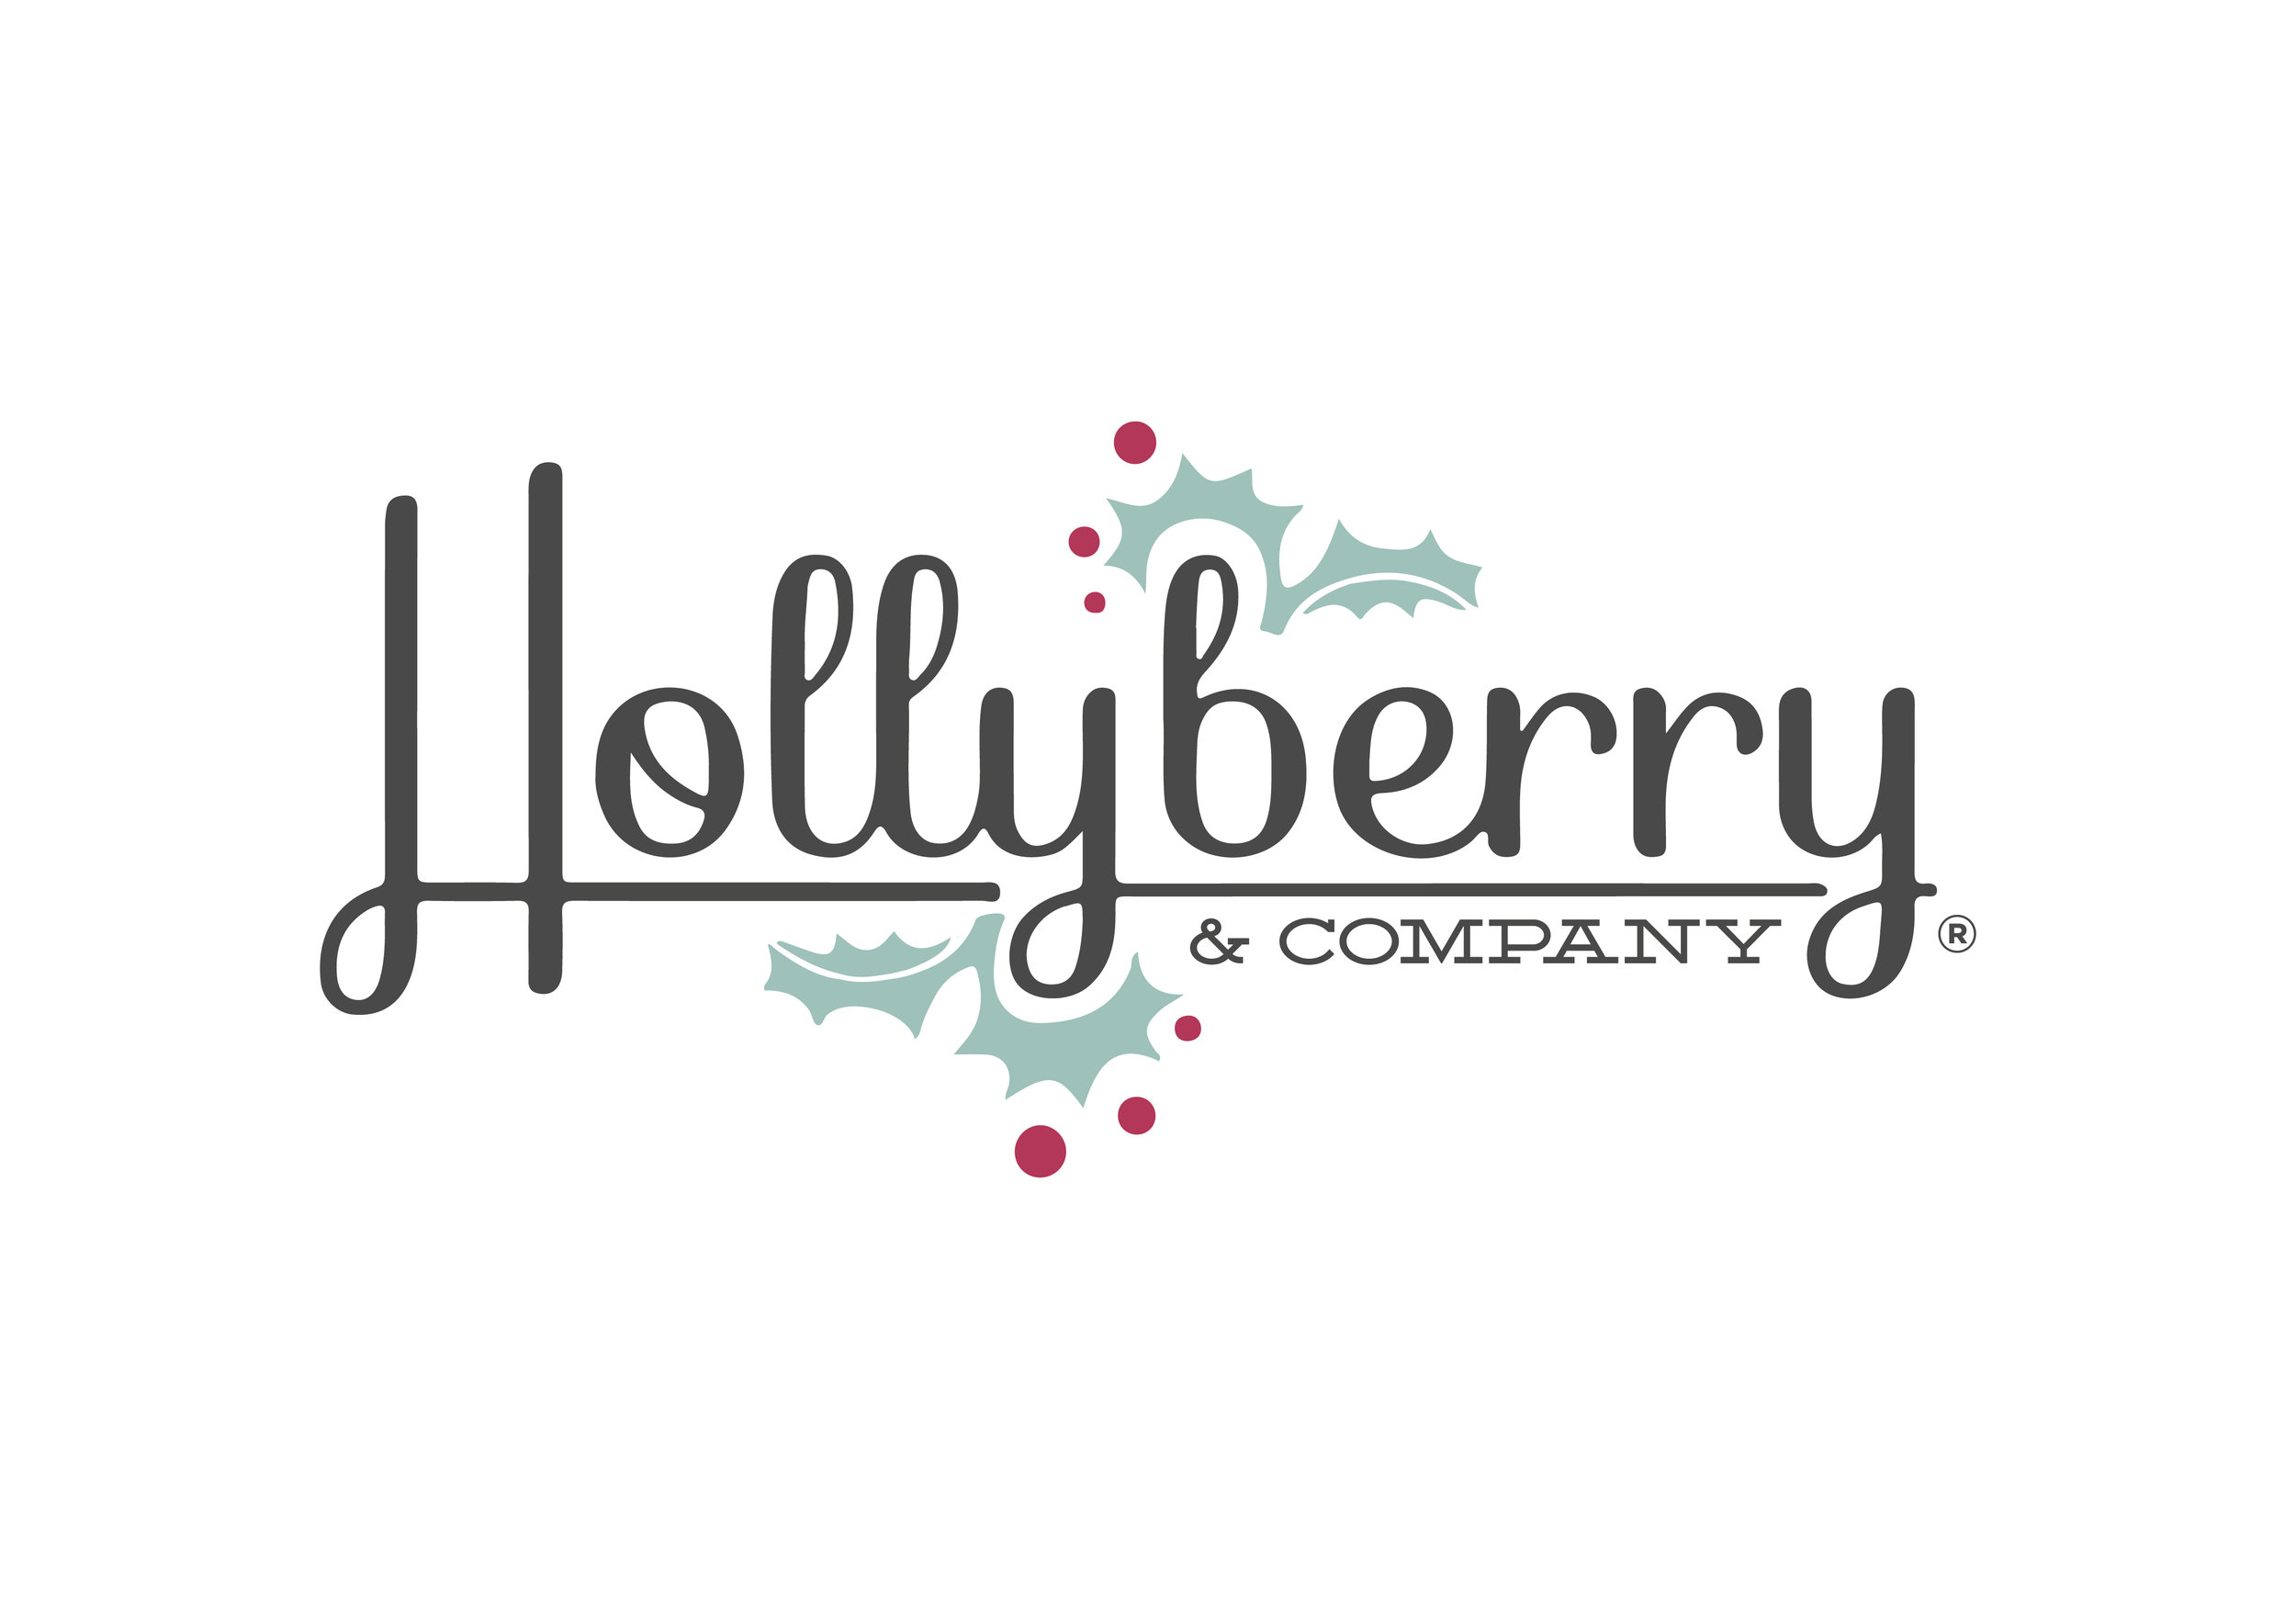 hayley bigham designs-tulsa graphic designer-hollyberry and company-logo design-home decor store